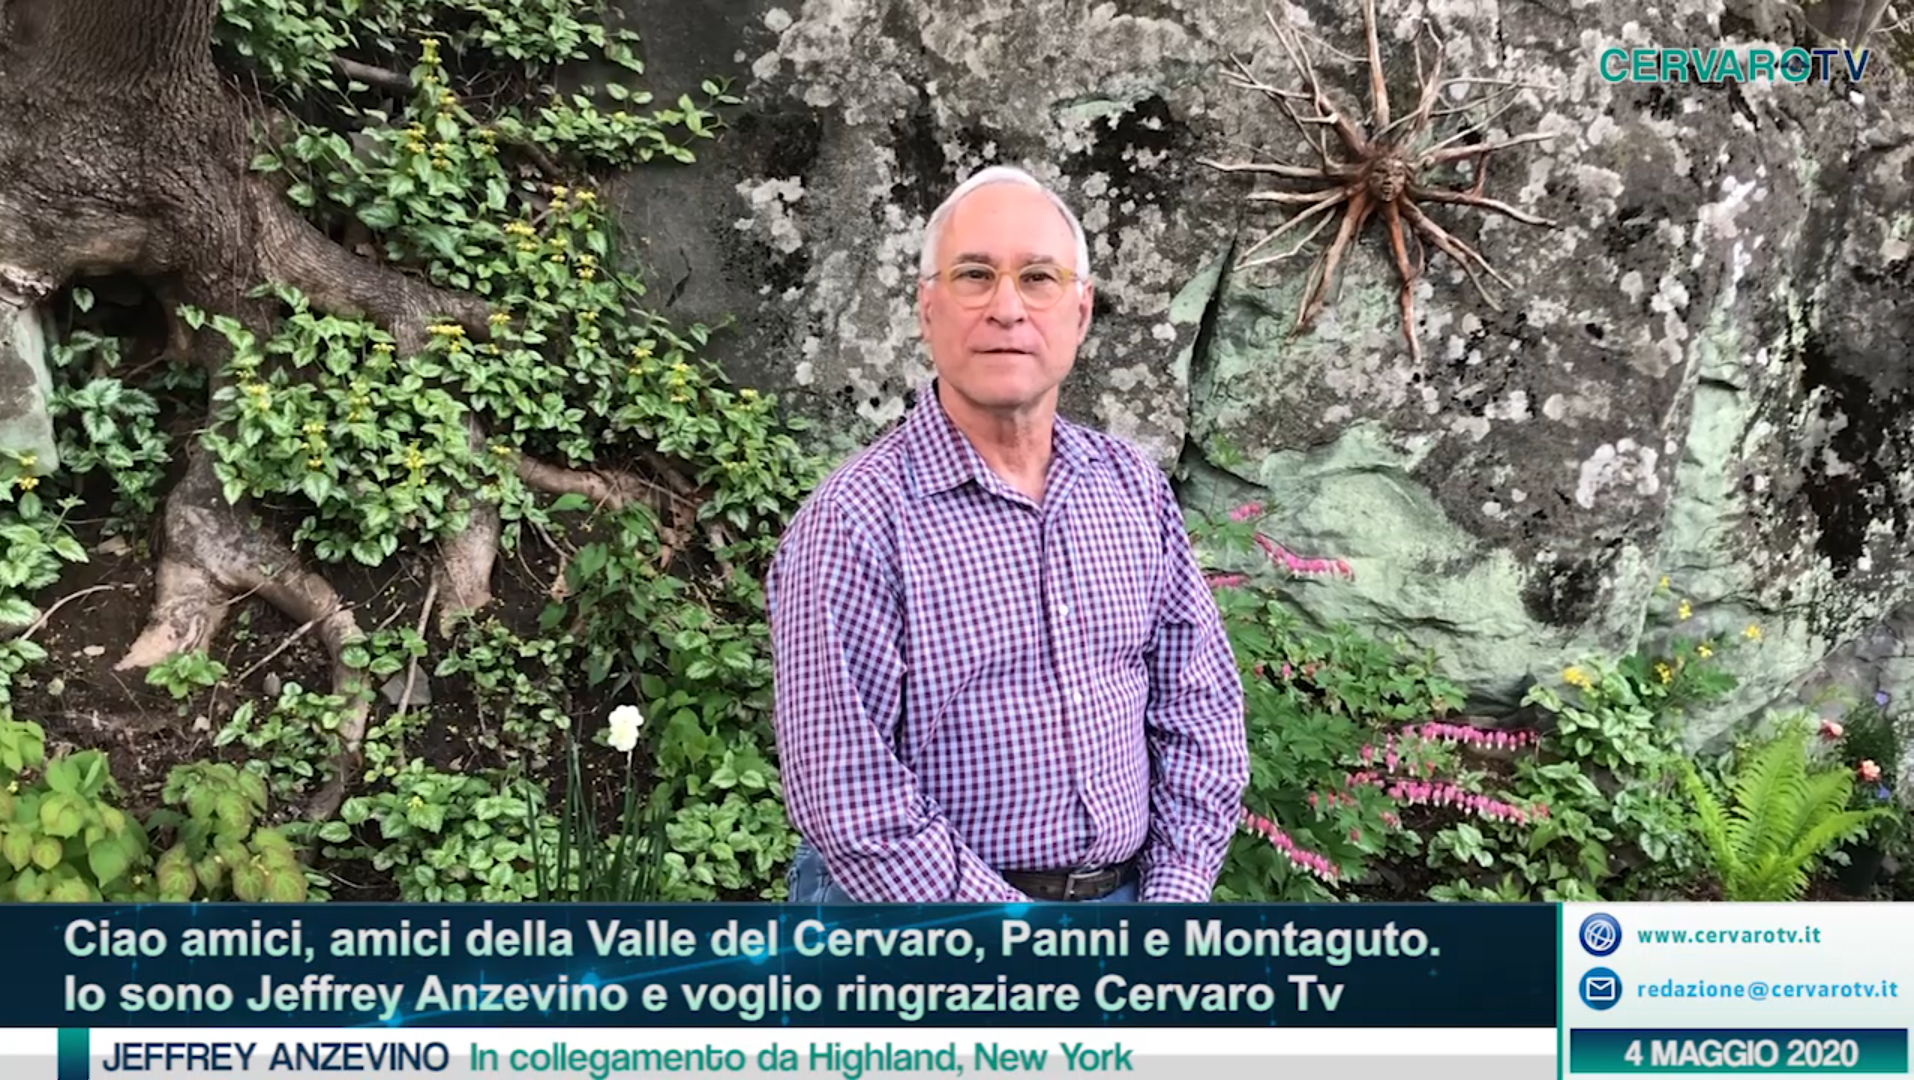 CERVARO TV | Lo splendido saluto video di Jeffrey Anzevino da New York